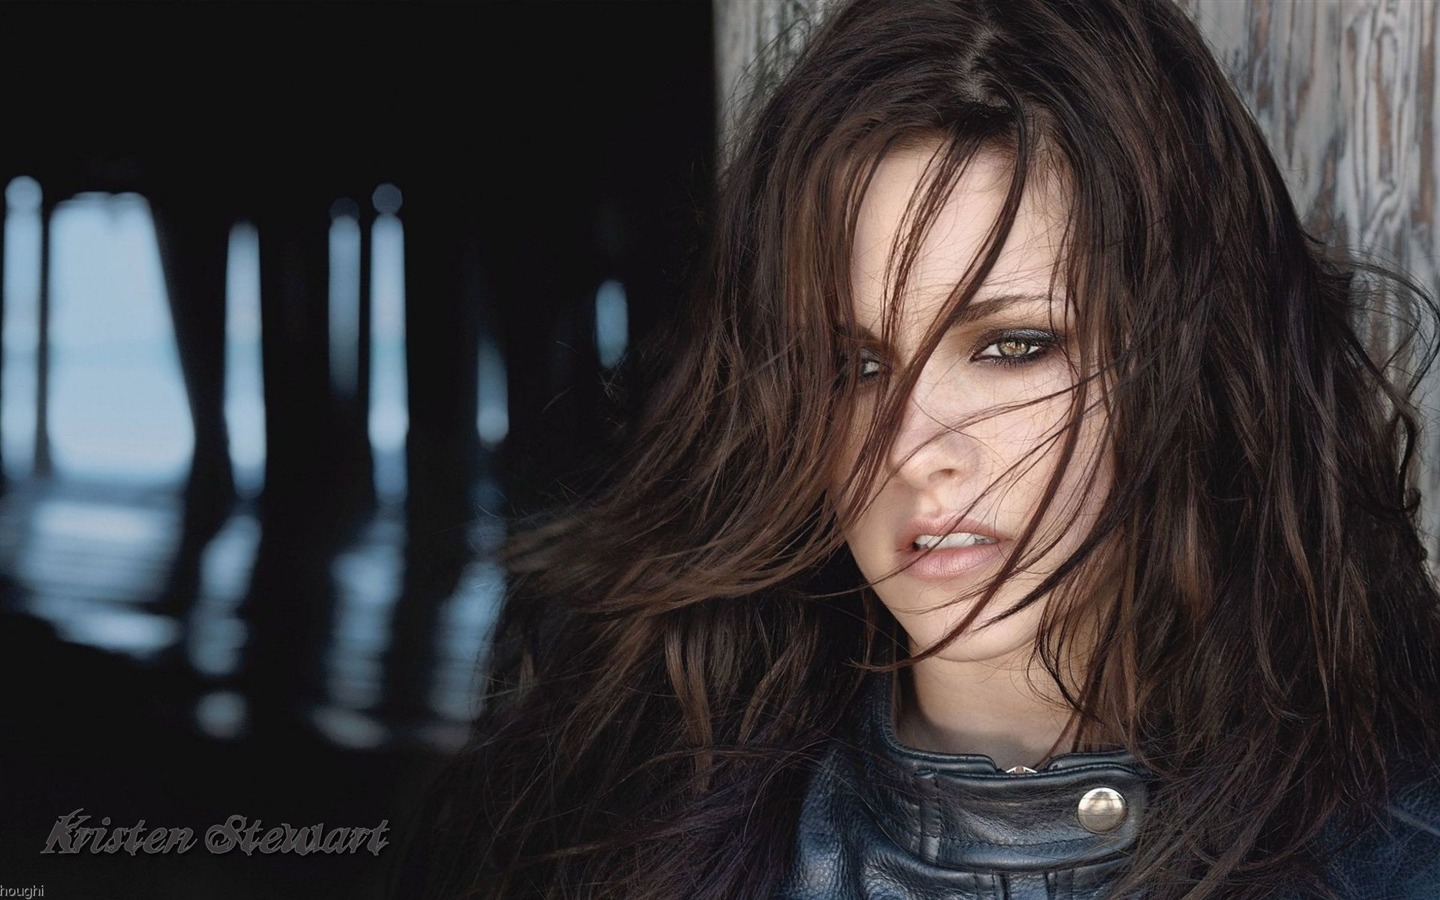 Kristen Stewart #015 - 1440x900 Wallpapers Pictures Photos Images